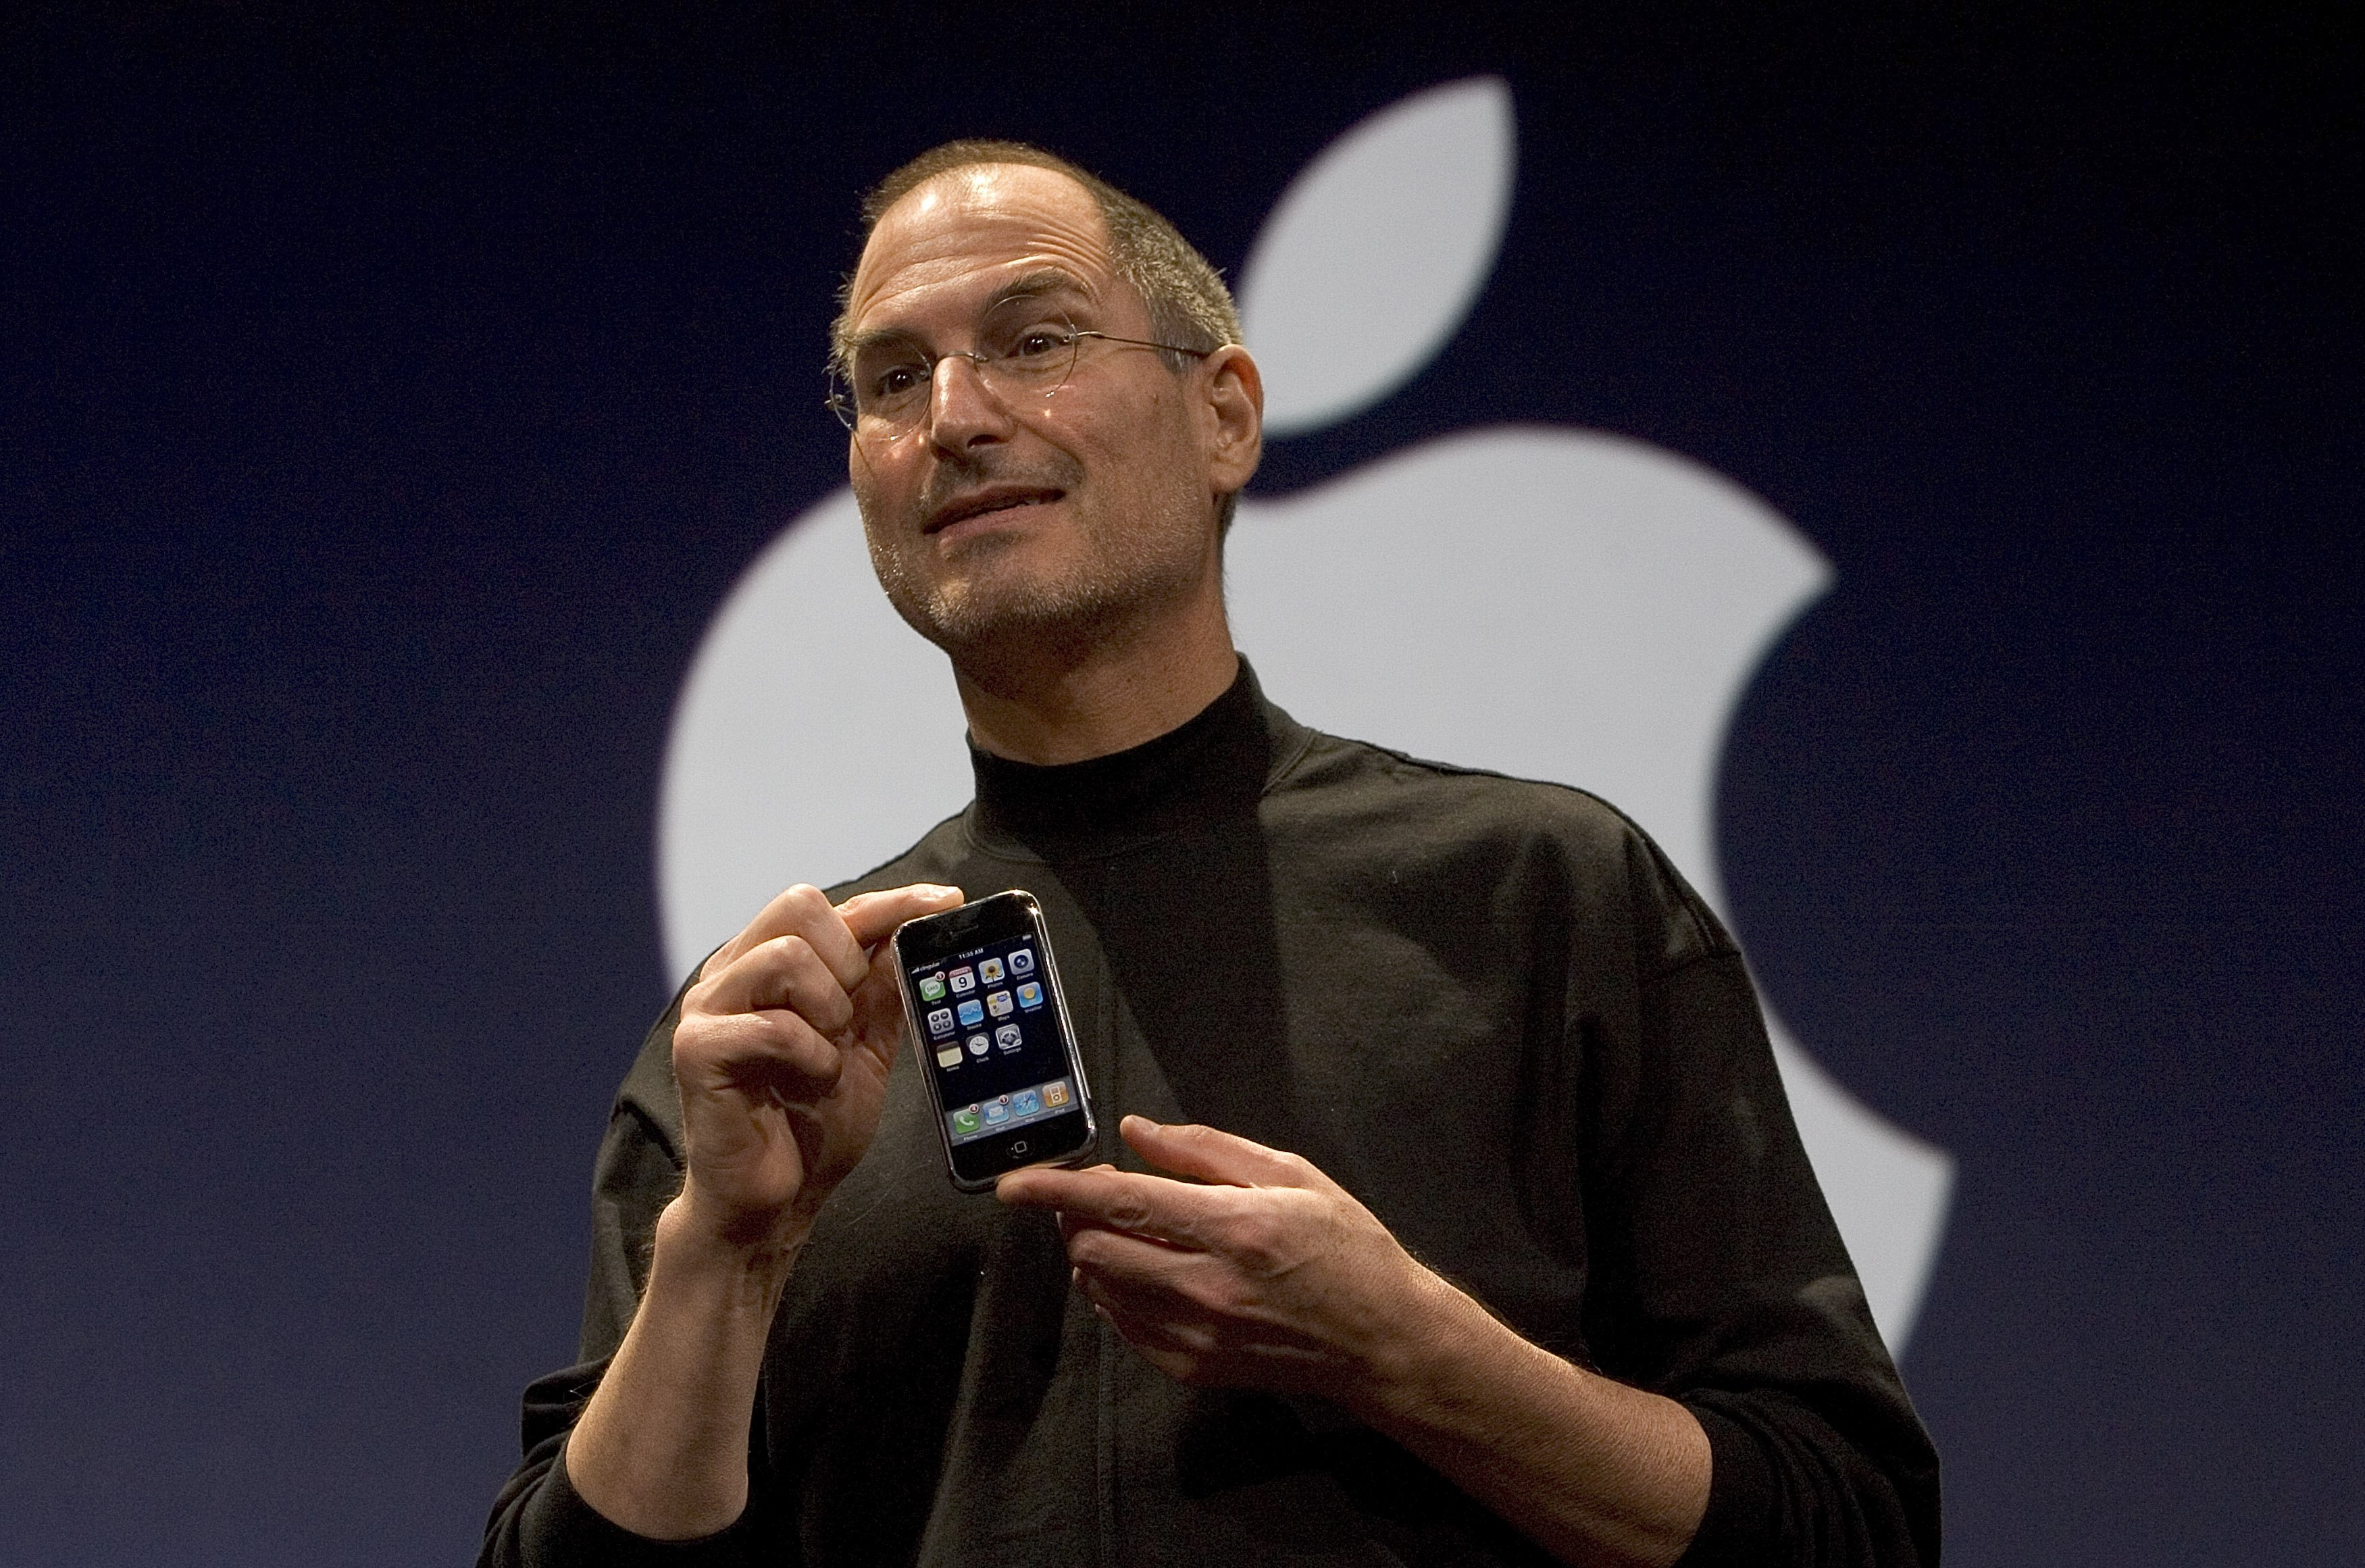 Watch Steve Jobs Launch the iPhone at Apple's 2007 Keynote | Time